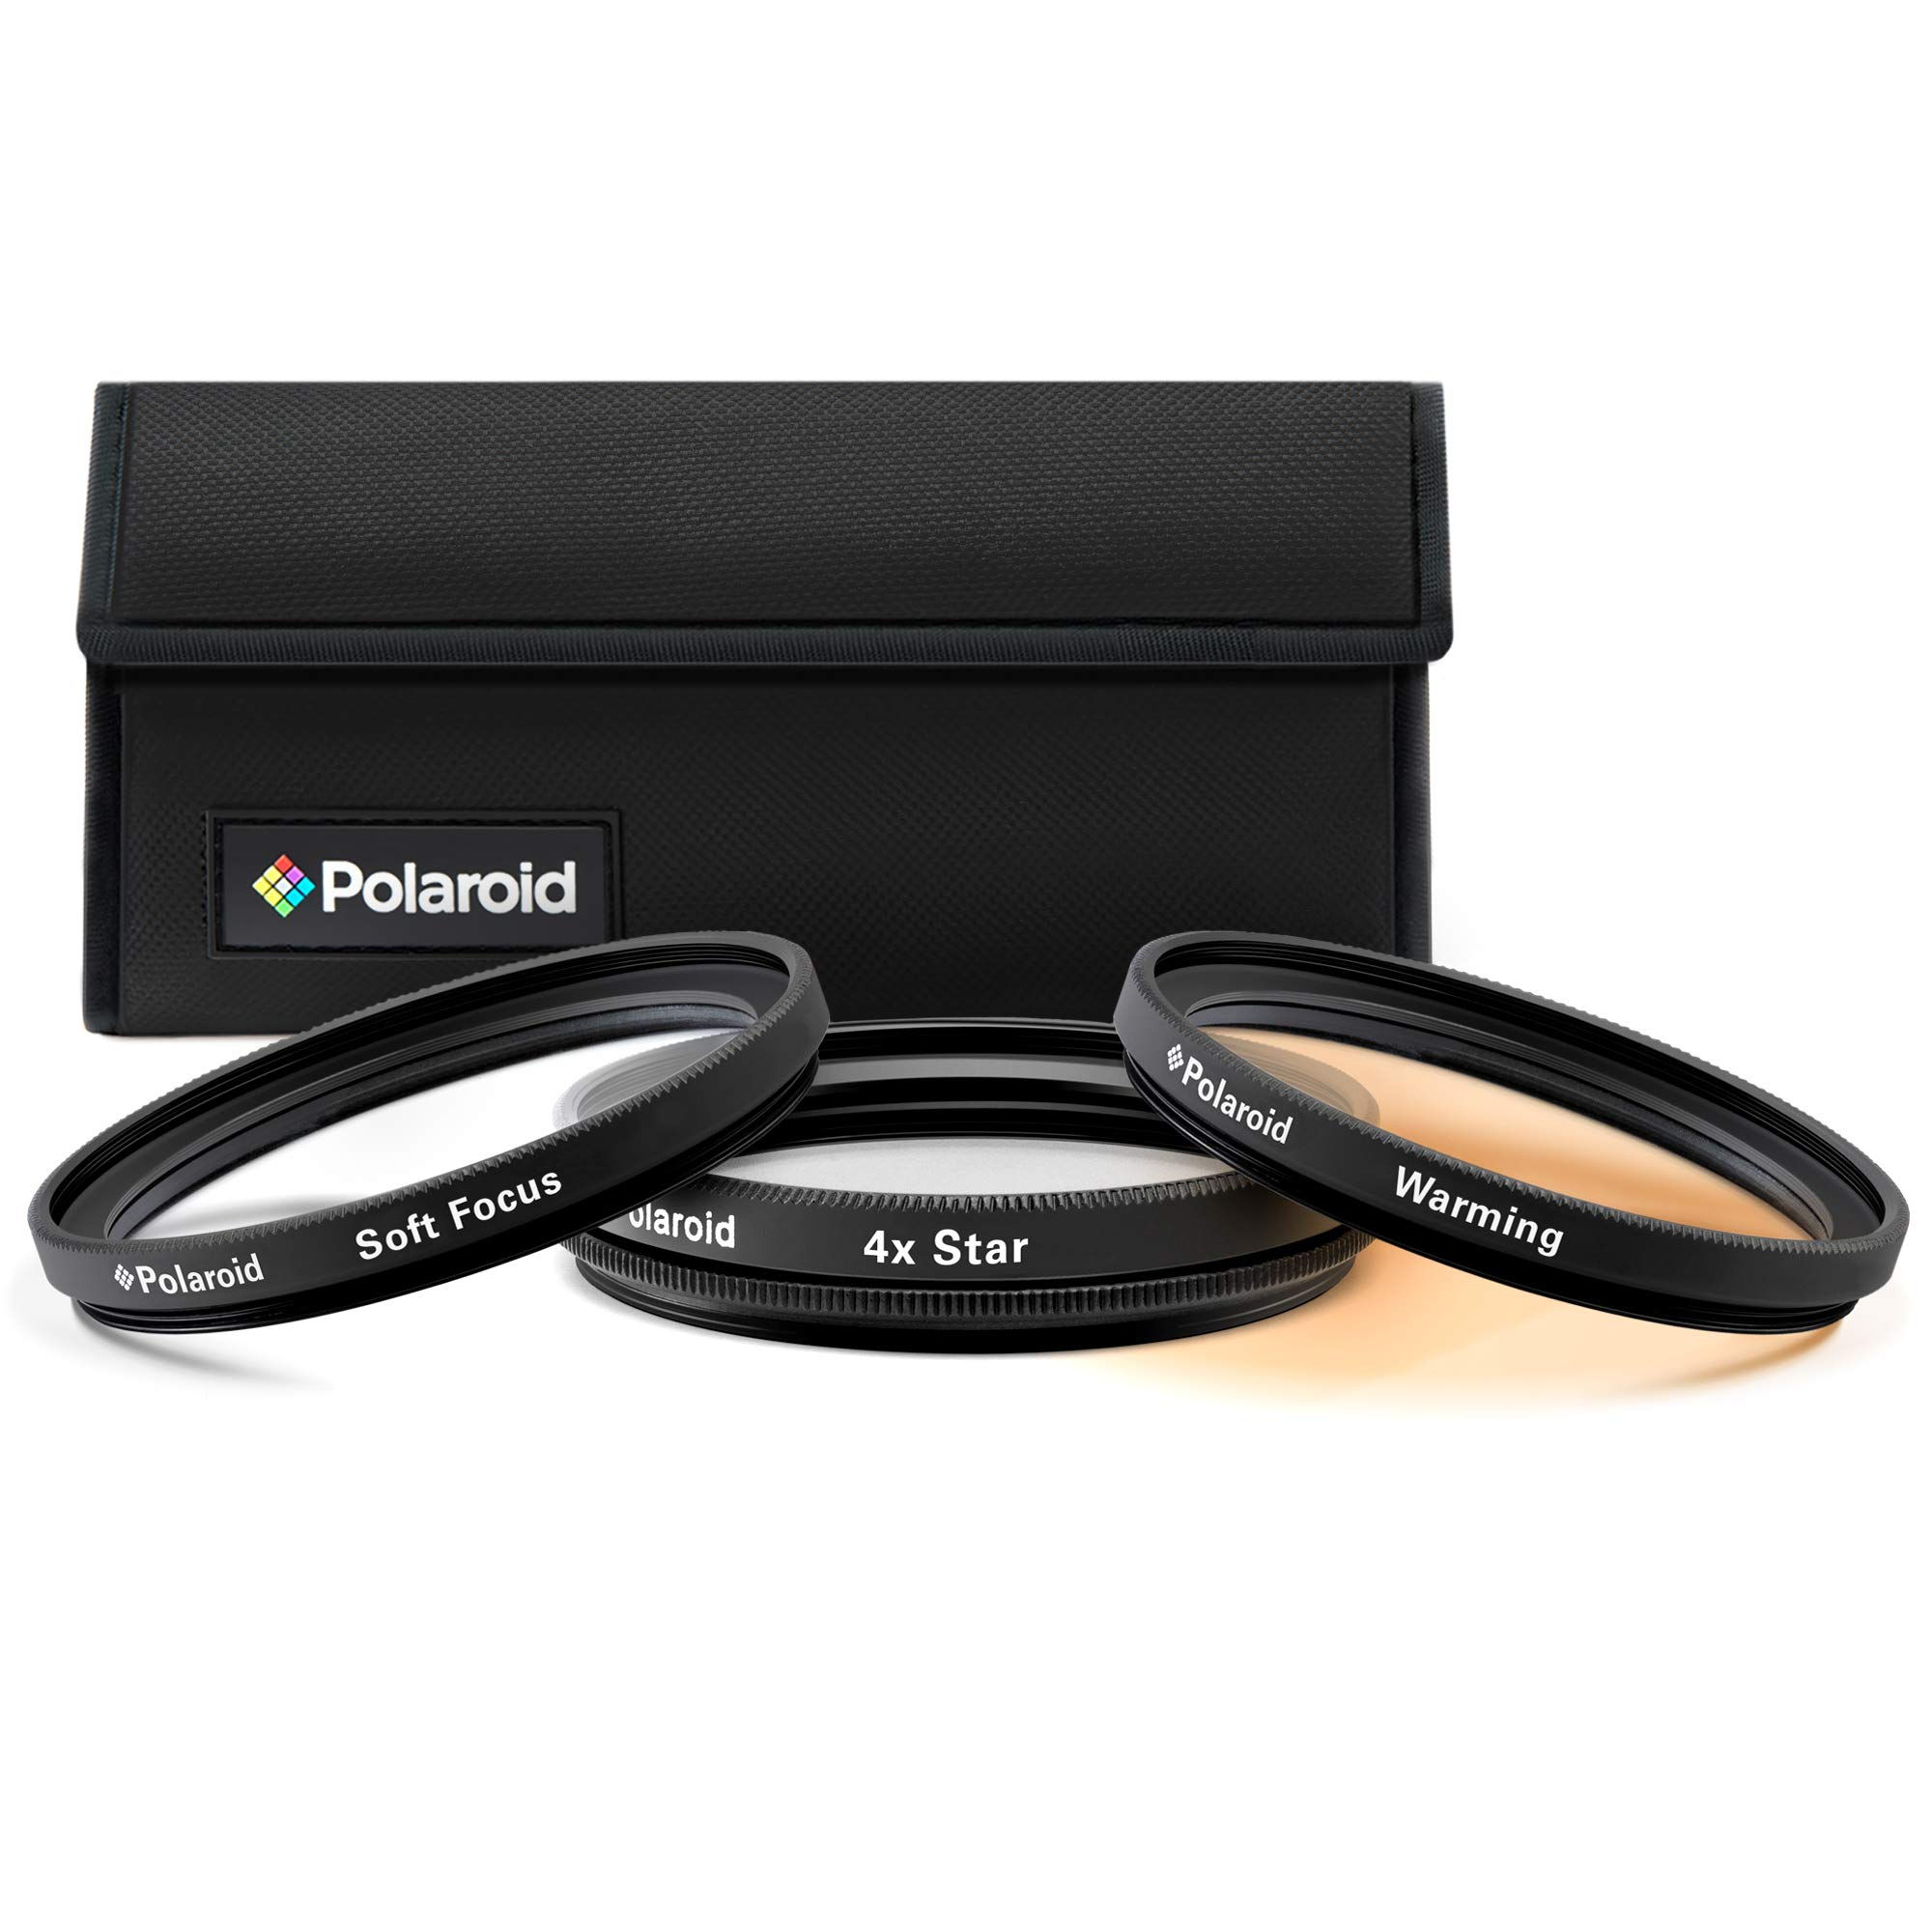 Polaroid Optics 77mm 3-Piece Special Effect Filter Kit Includes Soft Focus, 4 point Star Effect, Warming W/Nylon Carry Case - Compatible w/All Popular Camera Lens Models by Polaroid